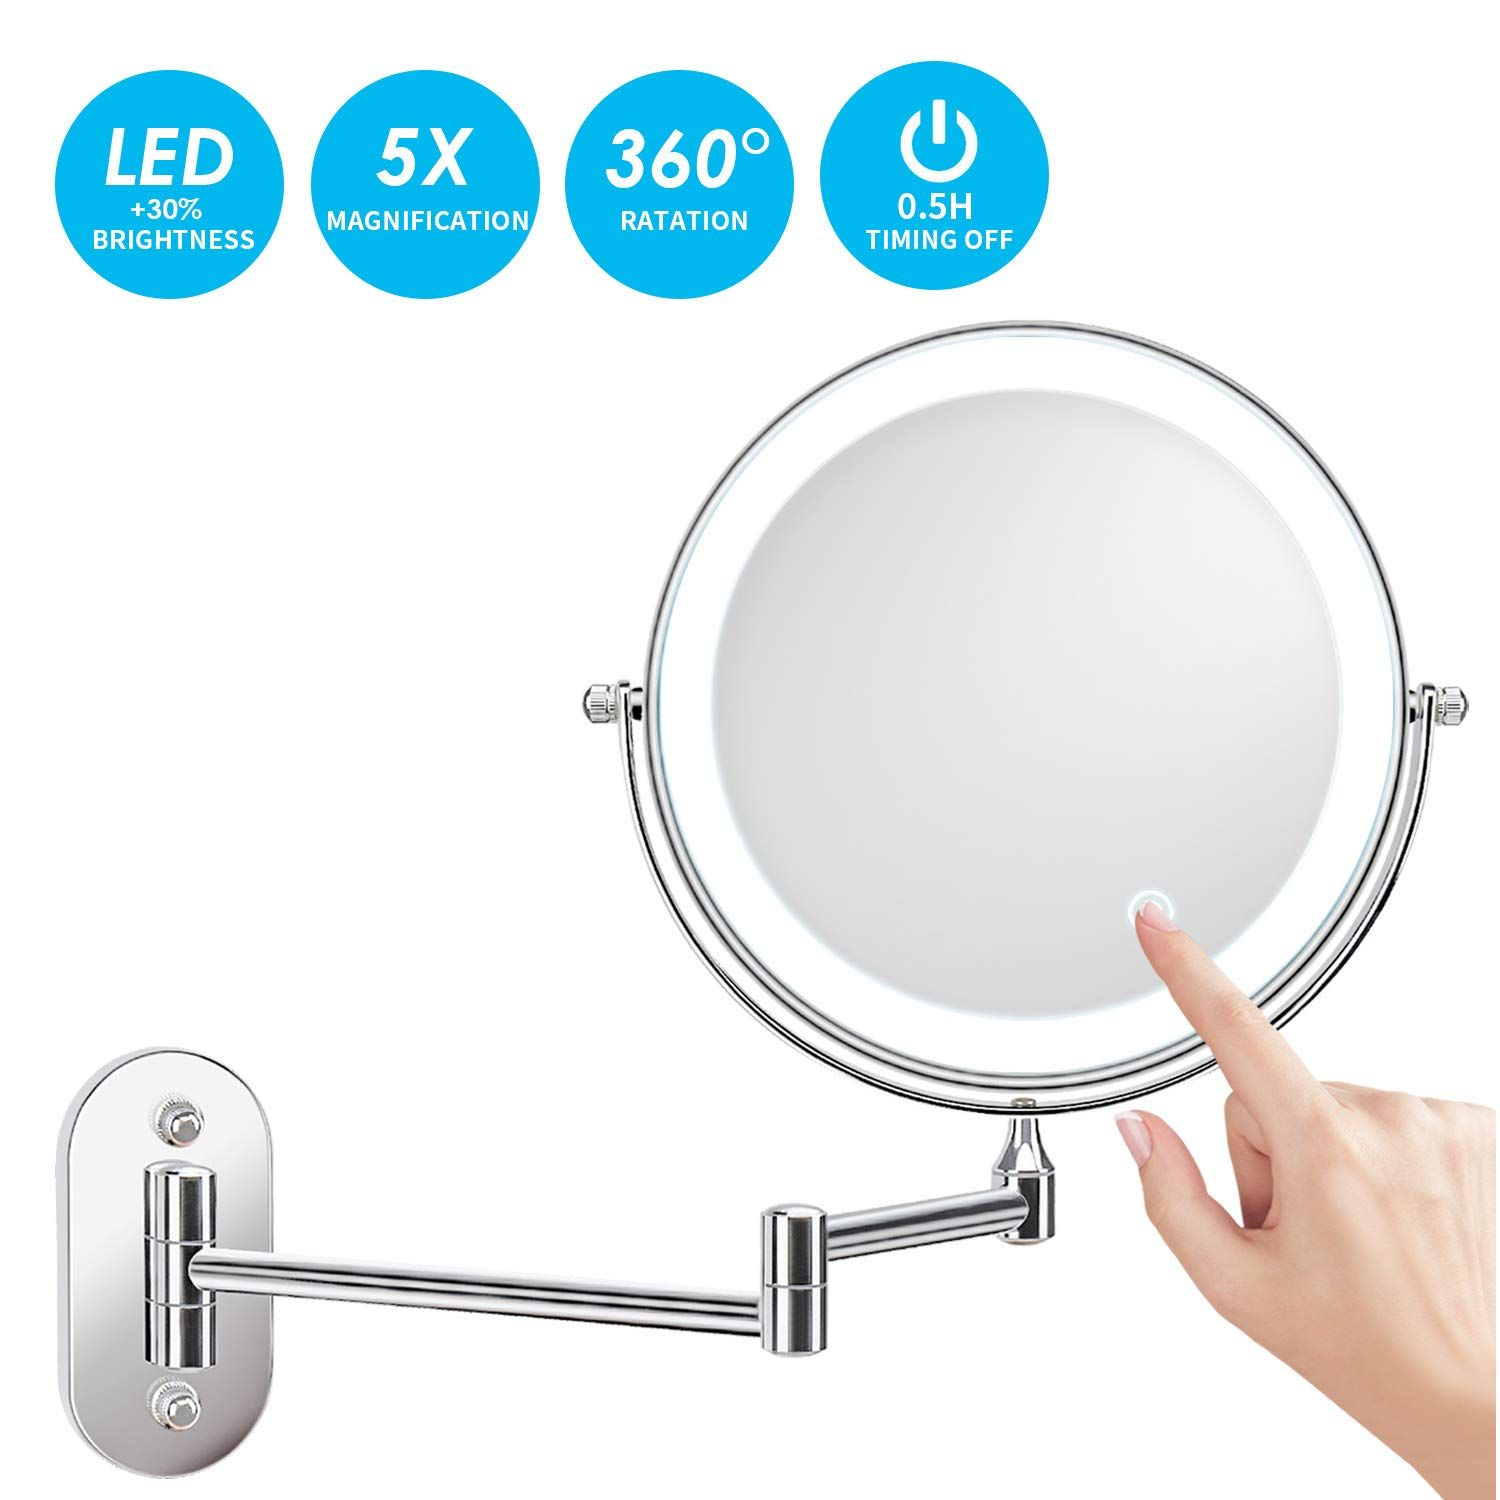 Top 10 Battery Operated Makeup Mirror Wall Mounted Reviews In 2020 In 2020 Wall Mounted Makeup Mirror Wall Mounted Lighted Makeup Mirror Makeup Mirror